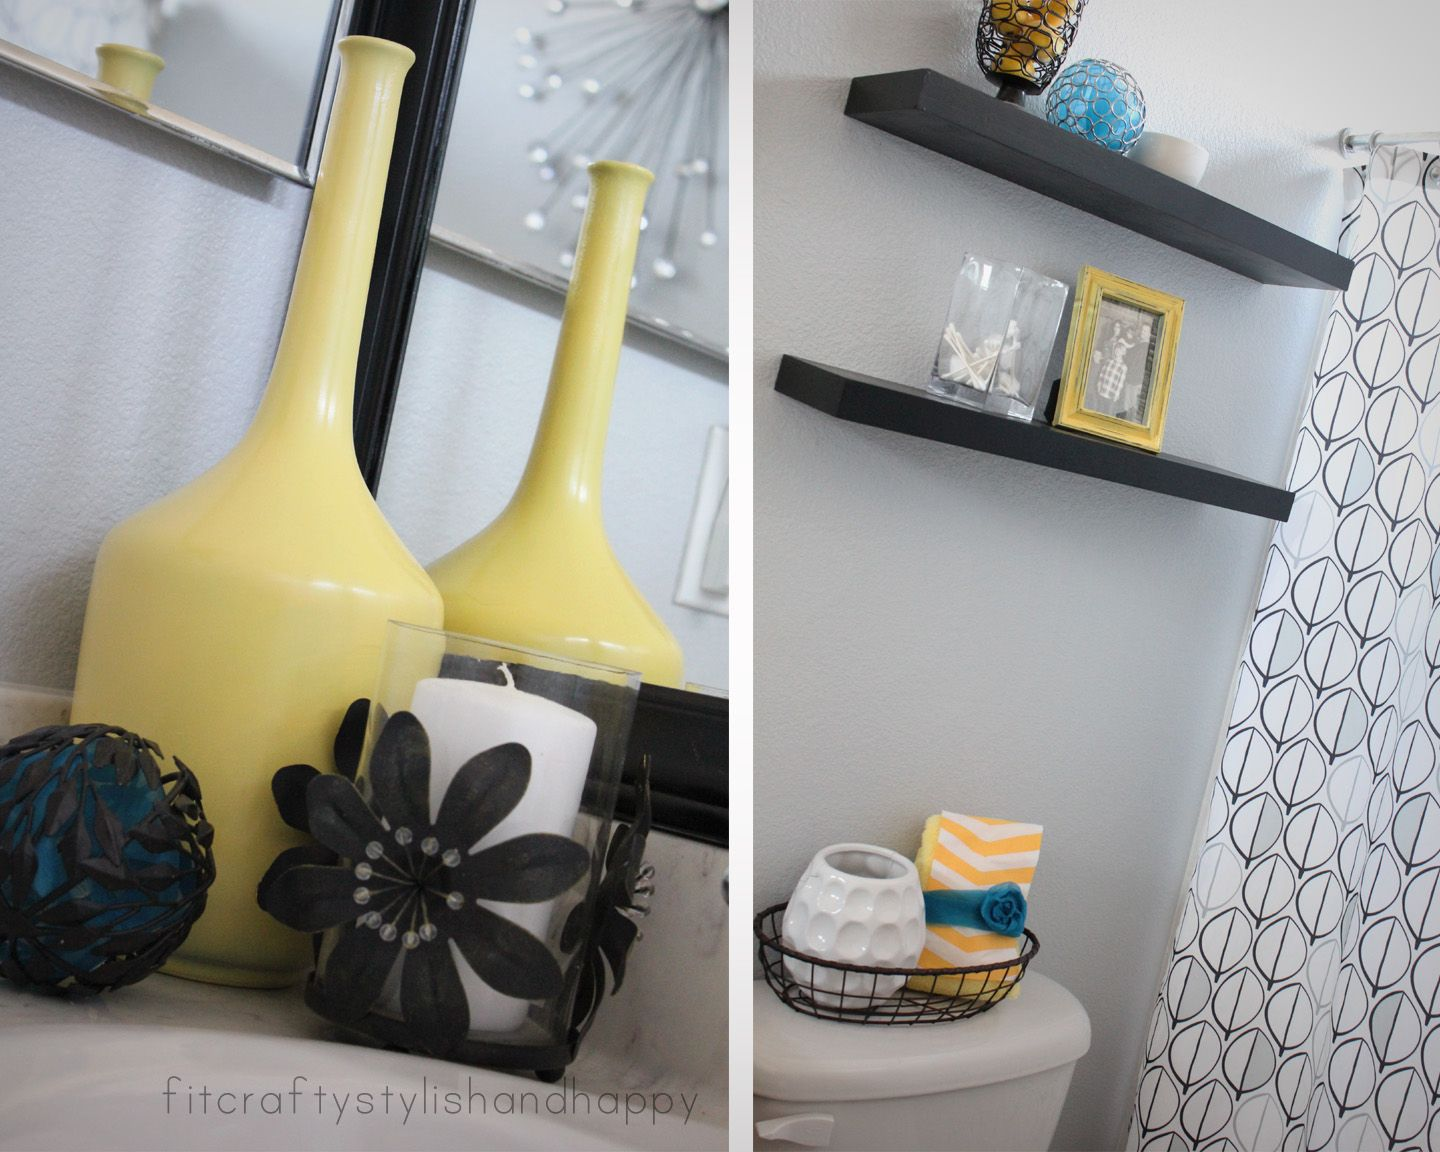 Cool Spa Inspired Small Bathrooms Tall Walk In Shower Small Bathroom Clean Grout For Bathroom Tile Repairs Average Price Small Bathroom Youthful Bathtub Cast Iron Vs Fiberglass WhiteBathrooms And More Reviews 1000  Images About Yellow And Gray Bathroom On Pinterest | Gray ..